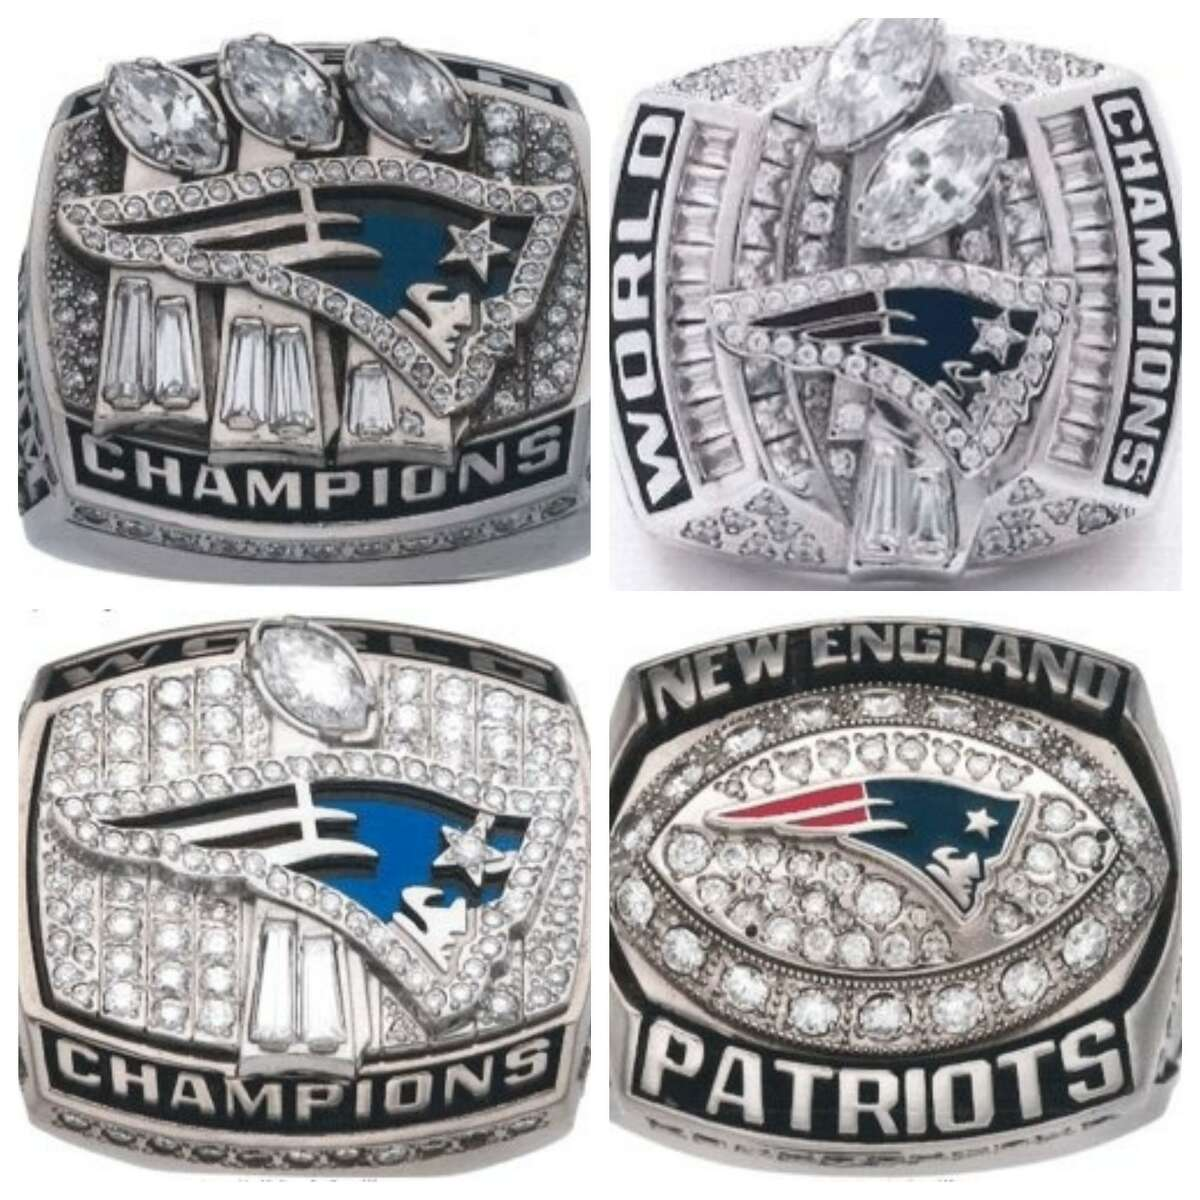 In a tweet that has since been deleted, the FBI said Friday they were looking for four stolen New England Patriots Super Bowl rings. These images are a representation of the stolen rings, not the exact items.